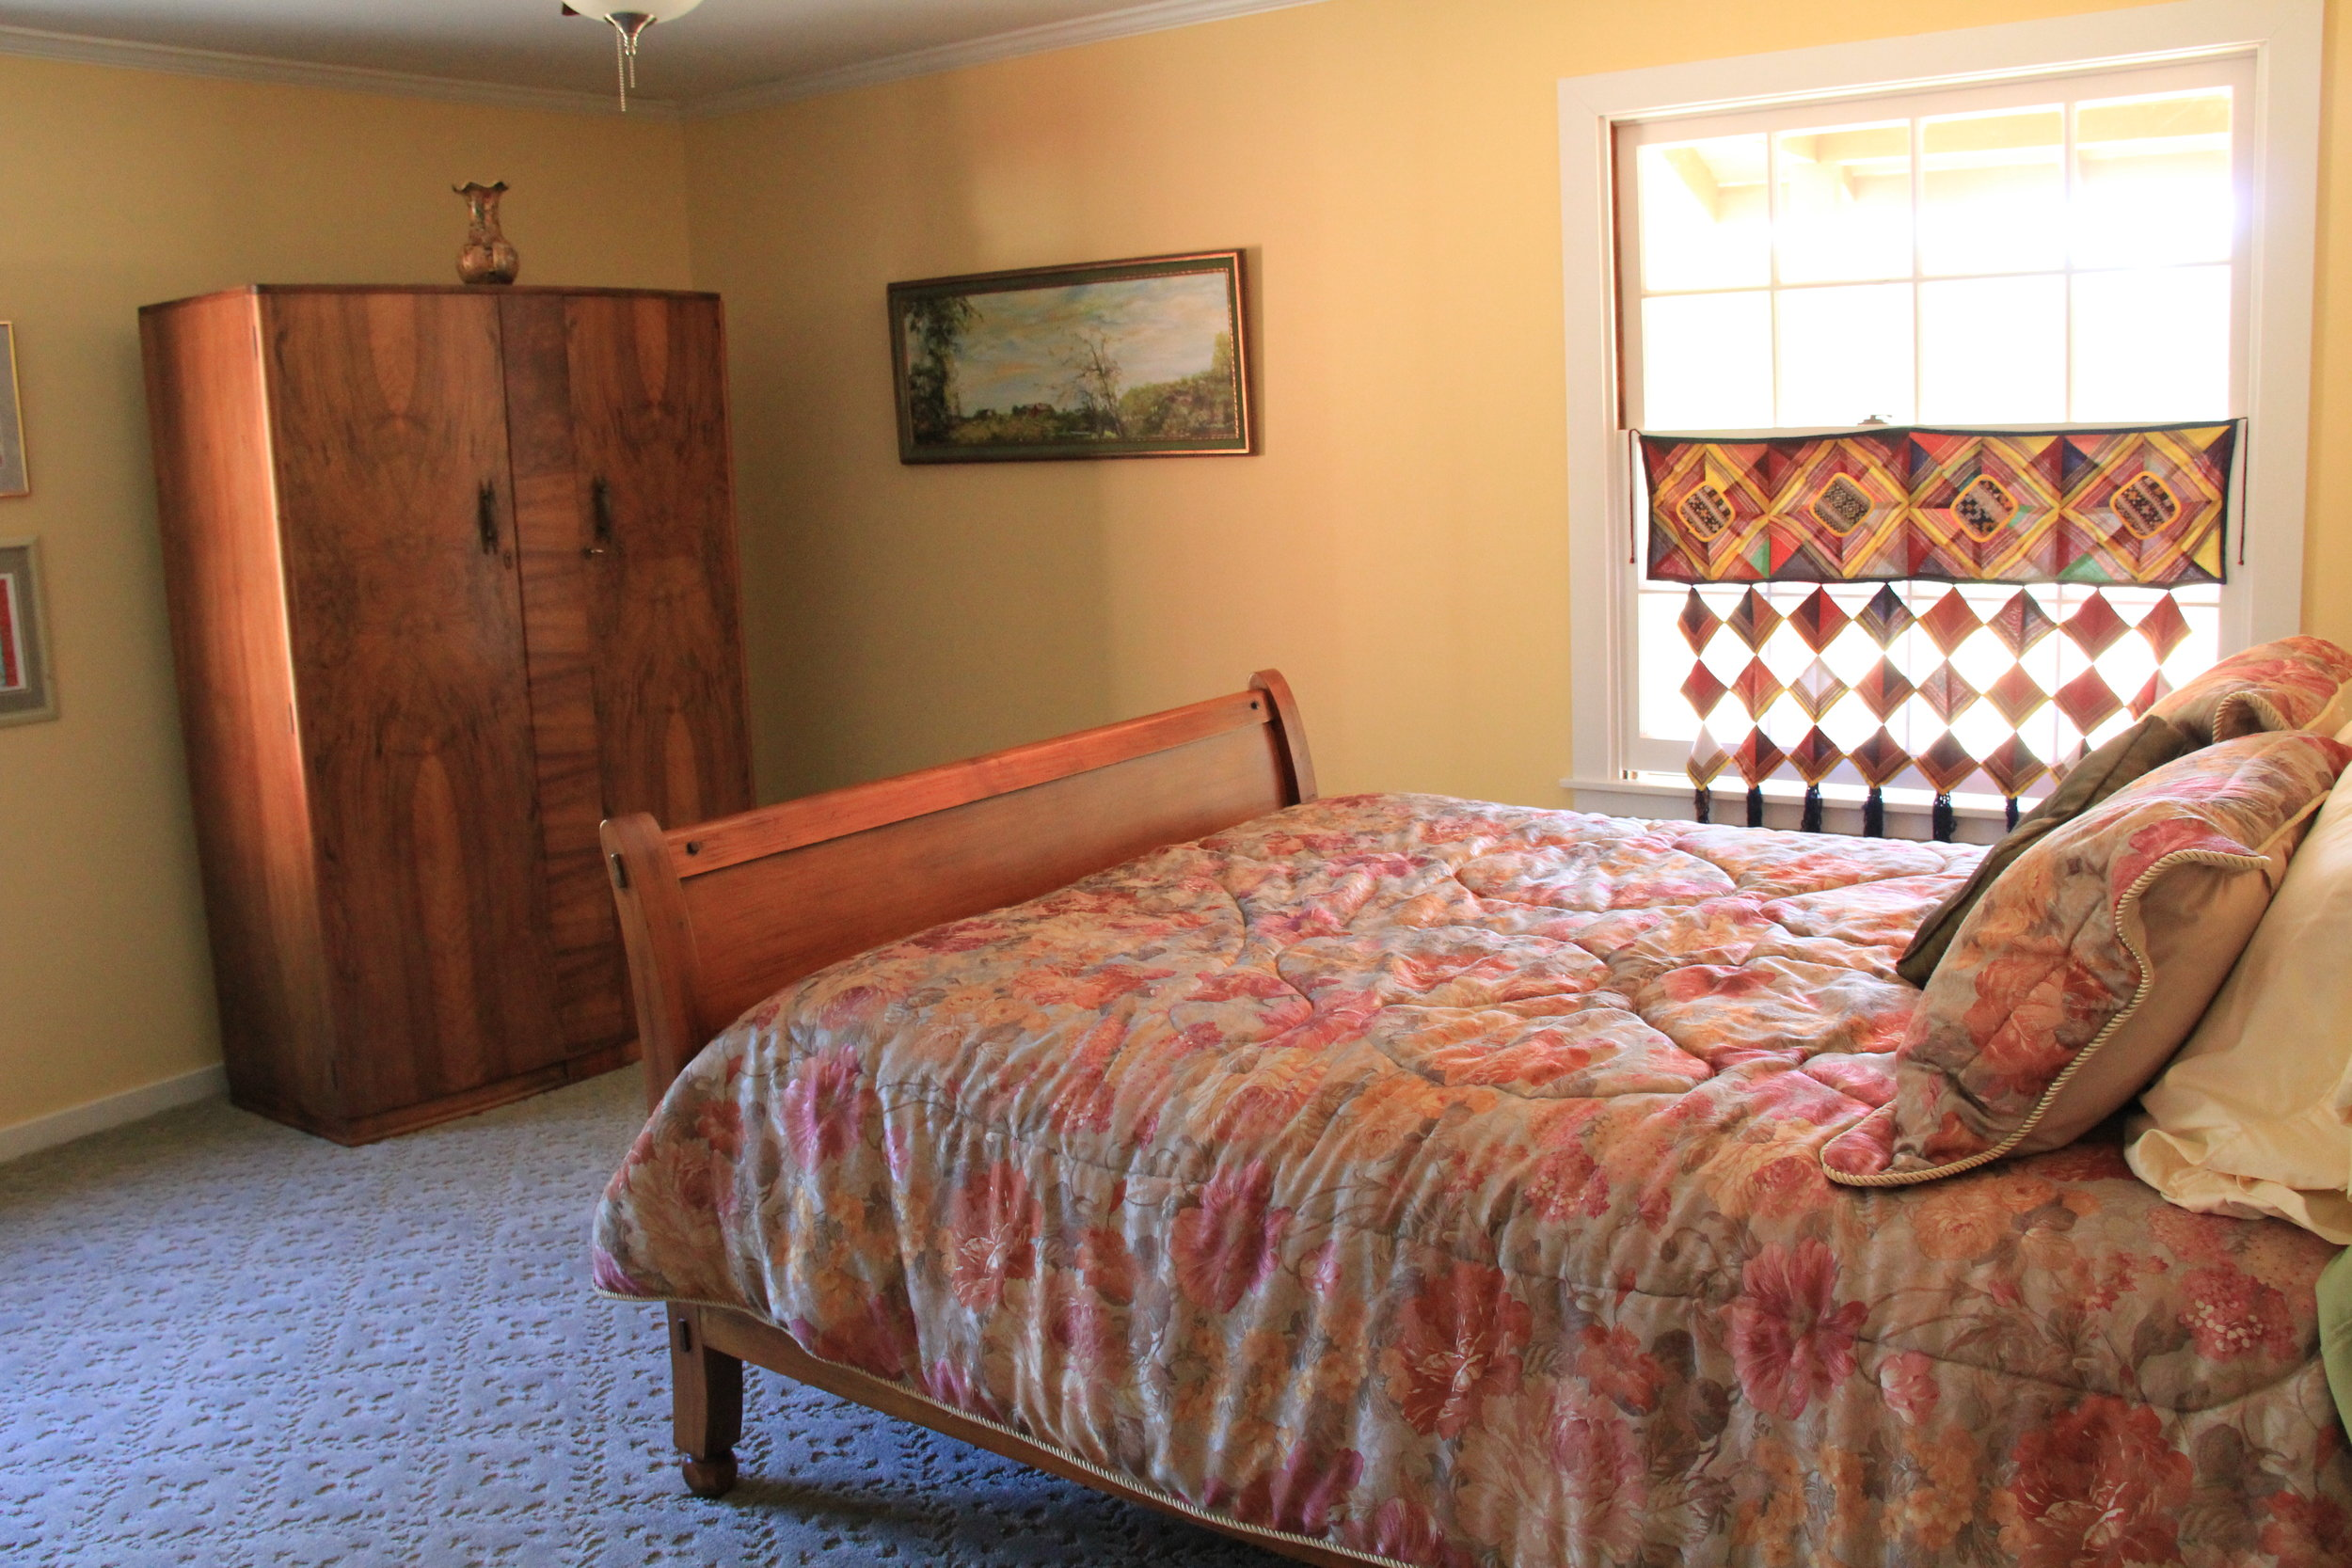 Cozy, comfy bedding awaits you in the Ranch House's second bedroom